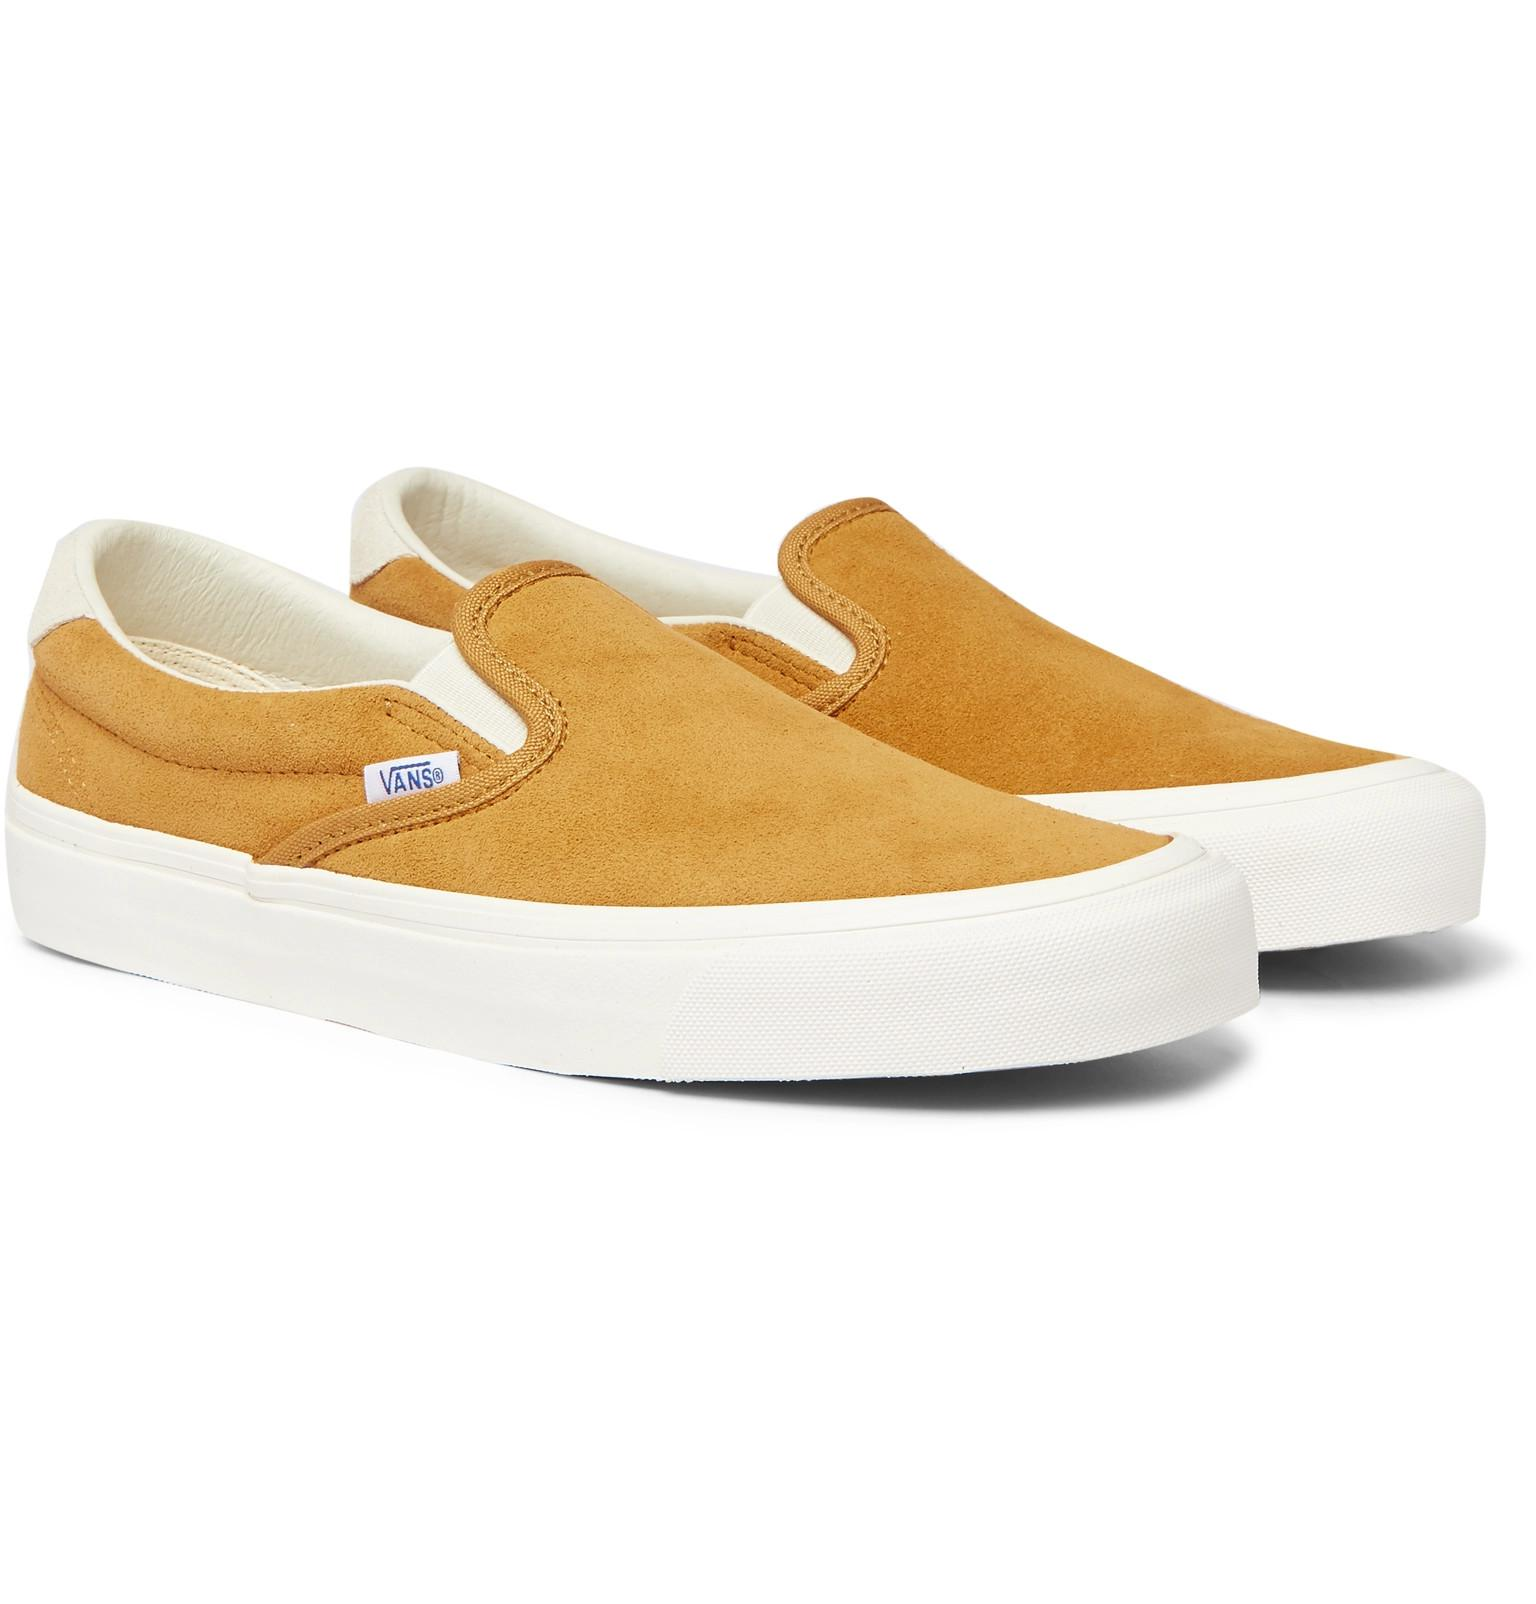 cc4882278090 Lyst - Vans Og 59 Lx Suede Slip-on Sneakers in Yellow for Men